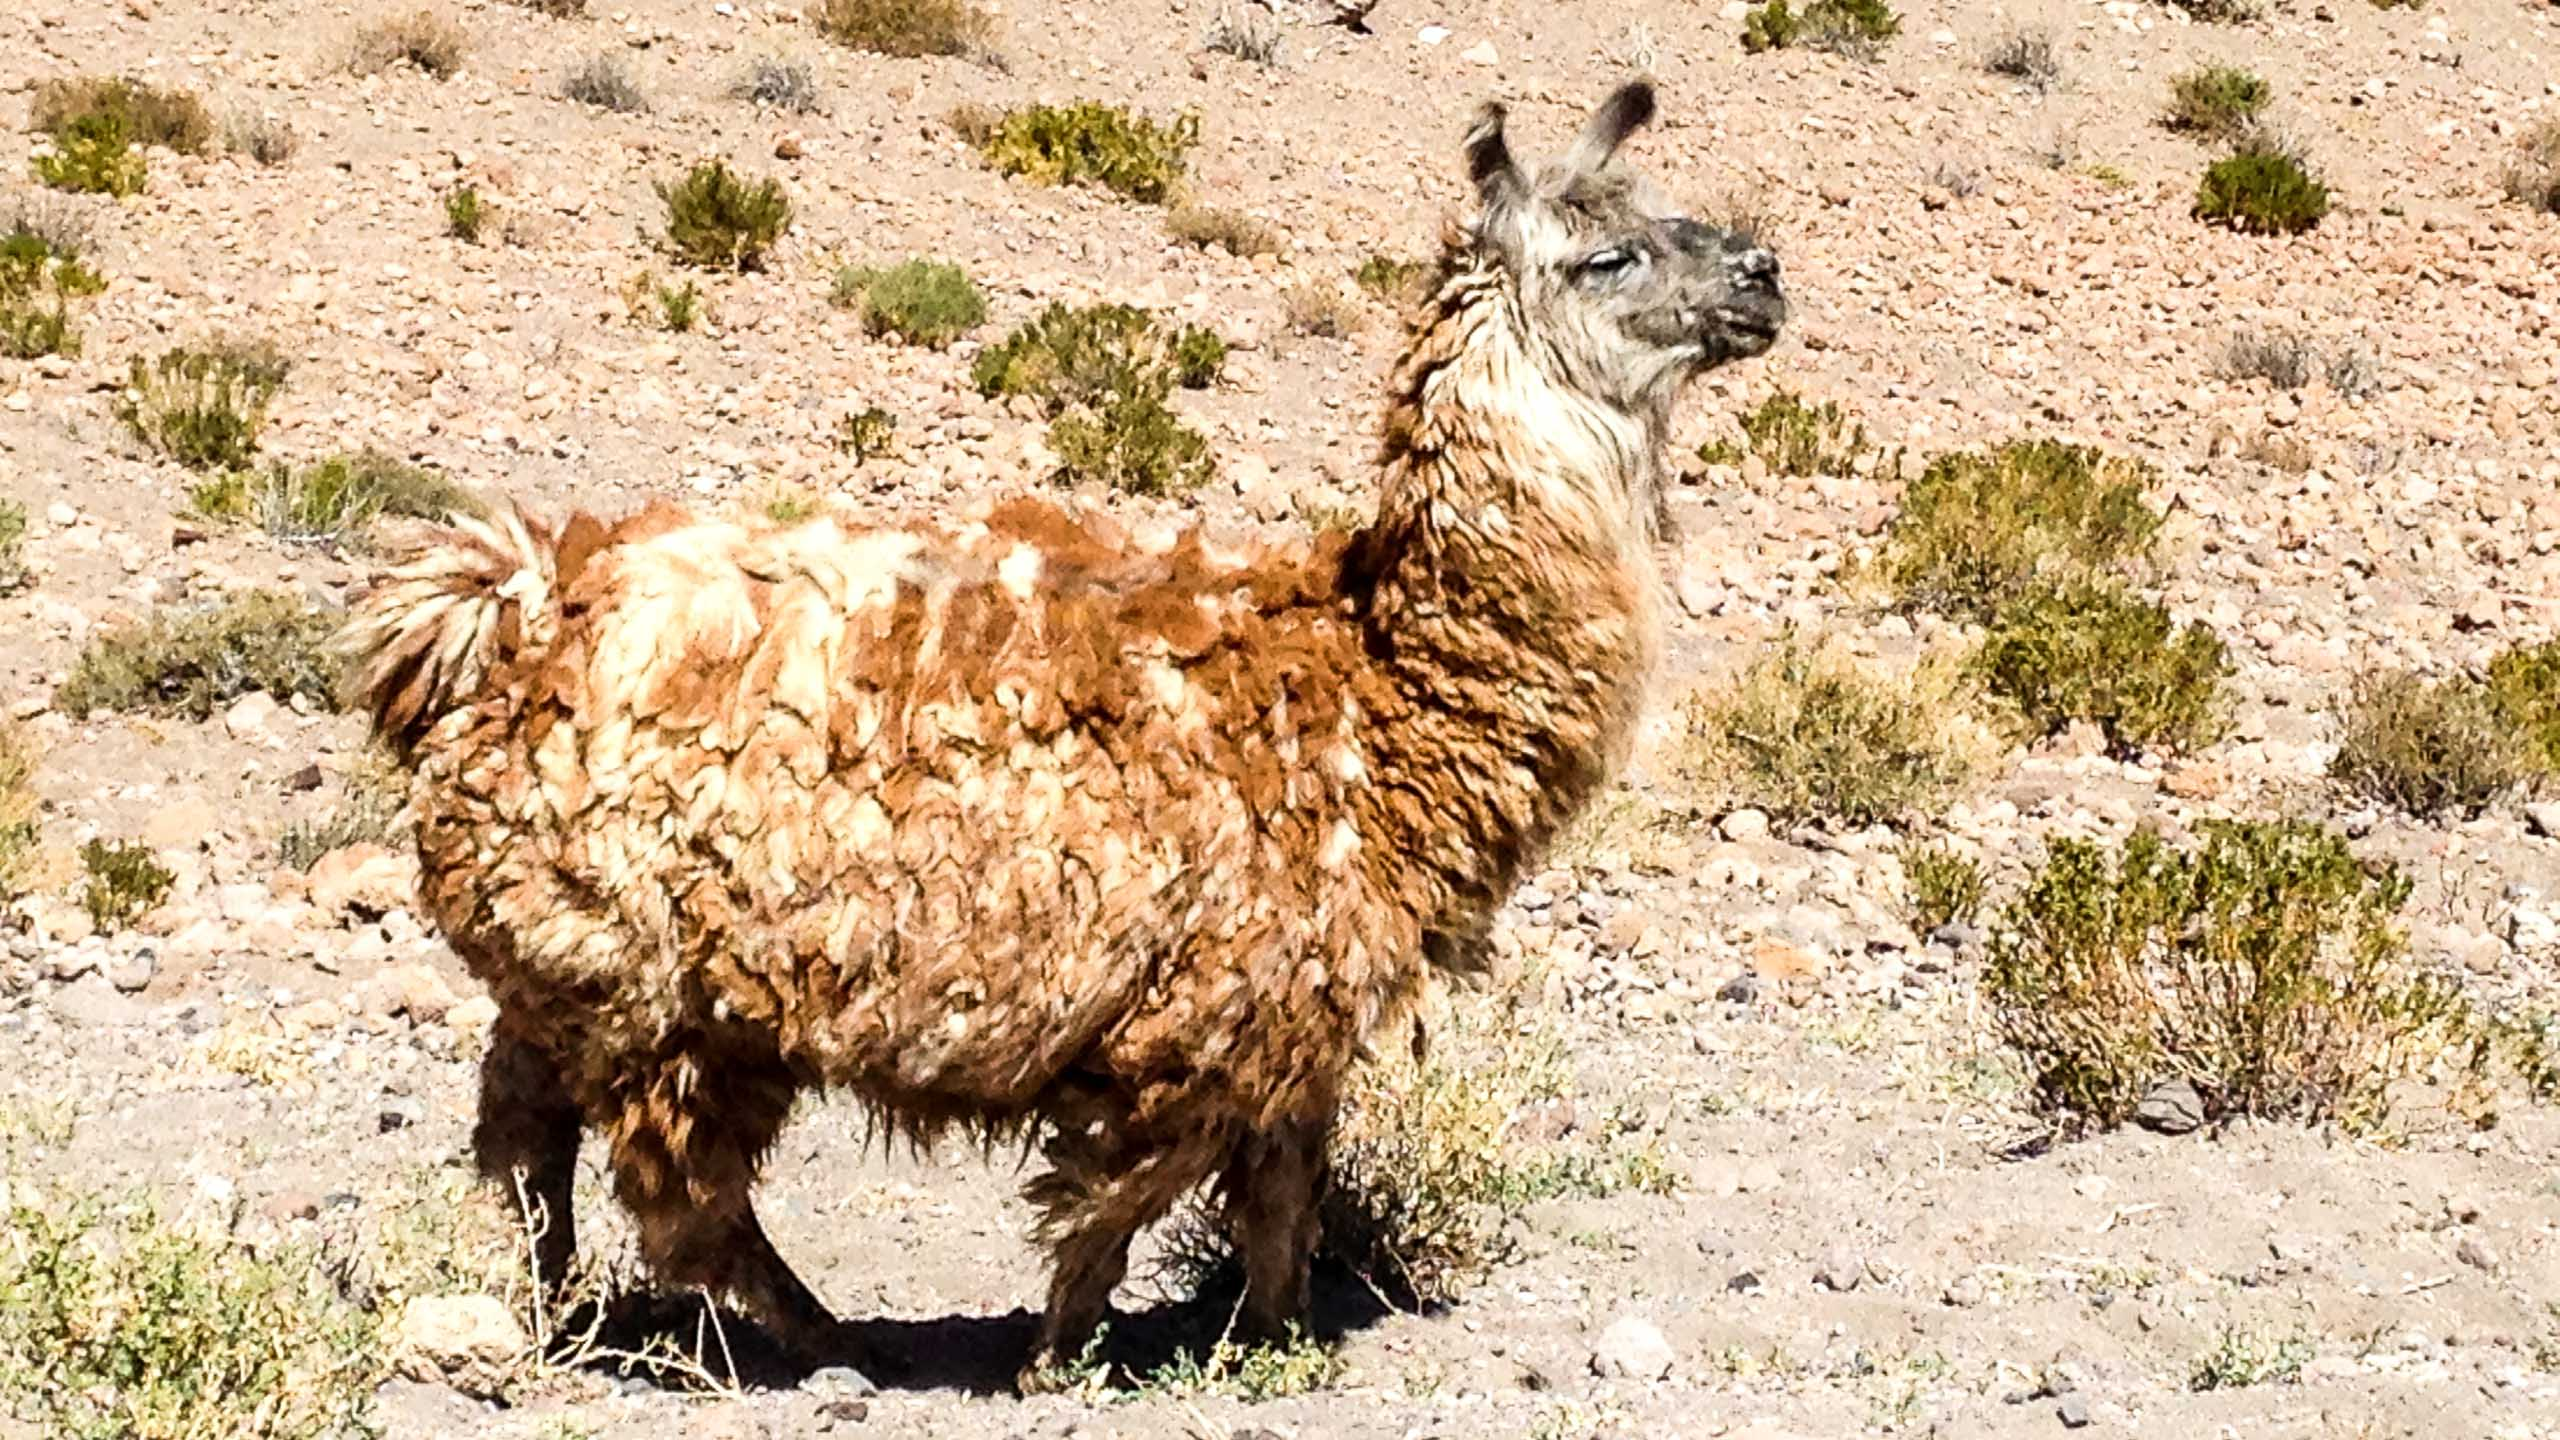 Fluffy llama in the Atacama Desert of Chile